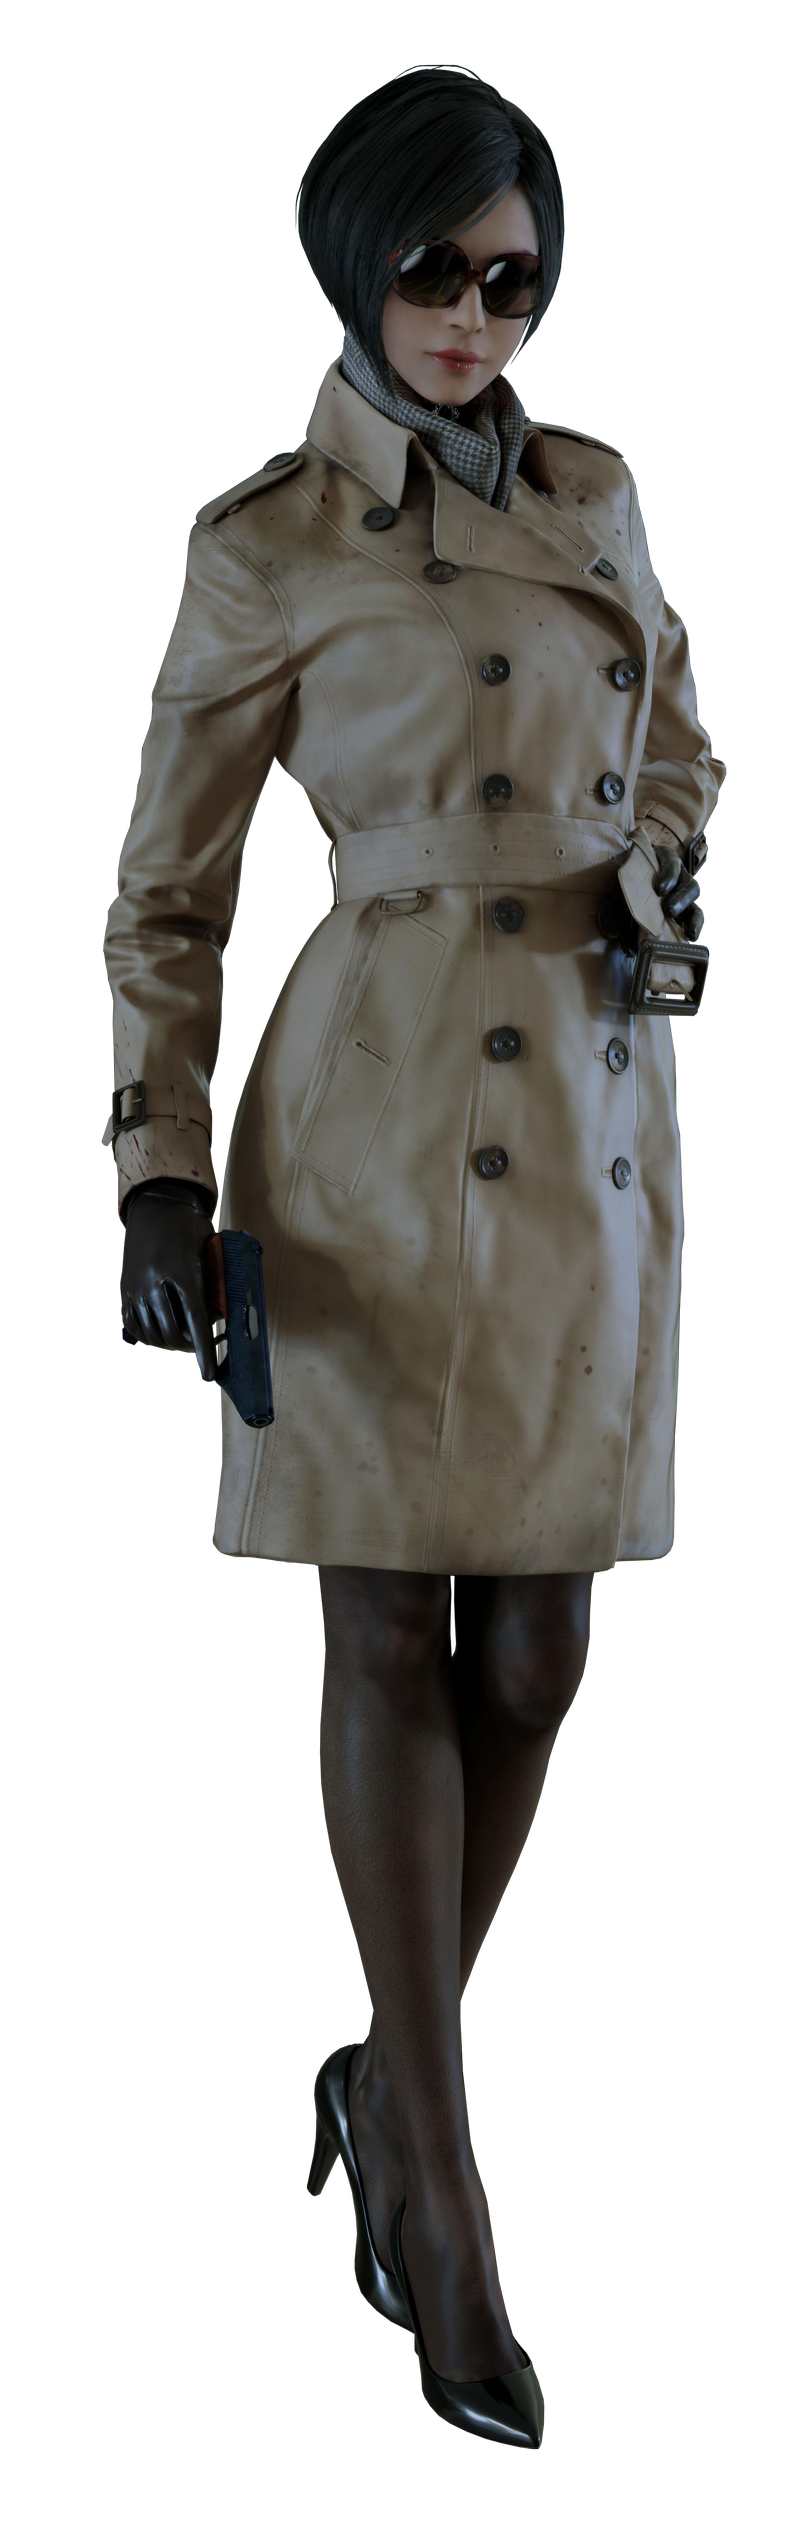 Resident Evil 2 2019 Ada Wong Png 1 By Mintmovi3 On Deviantart Resident Evil Ada Wong Leon S Kennedy